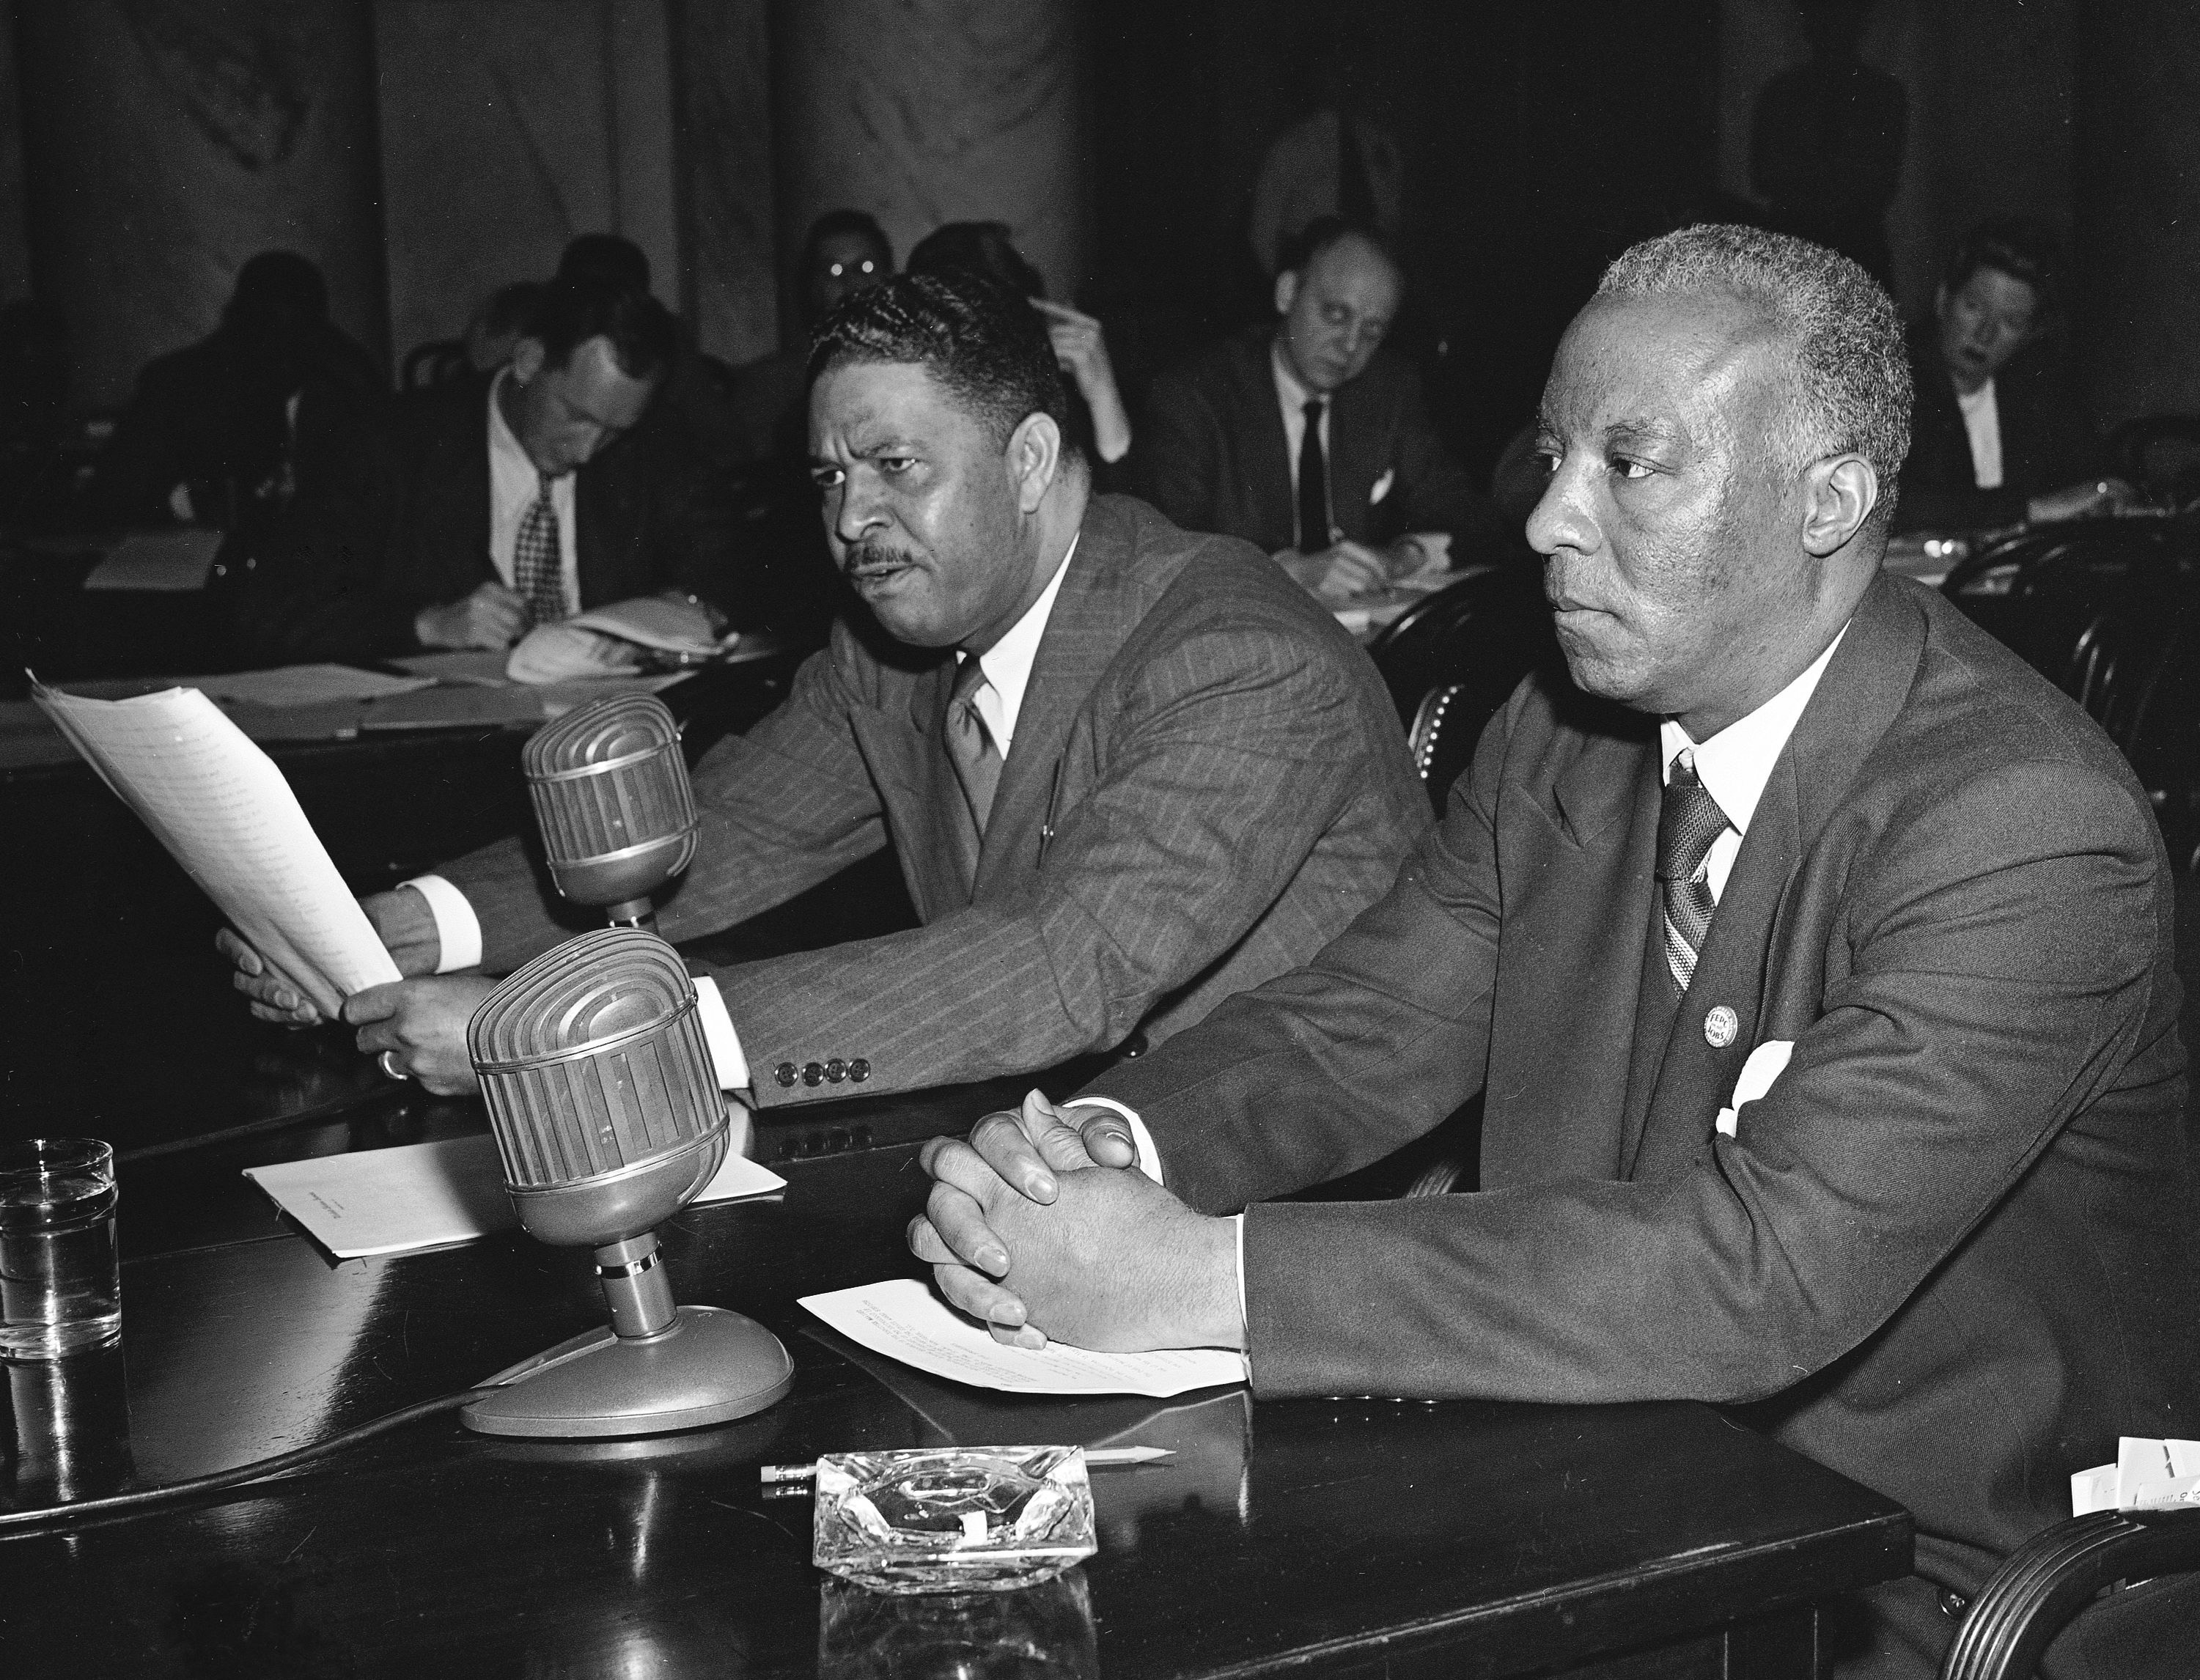 a phillip randolph Born asa philip randolph, the second of his parents' two sons, on april 15, 1889  in crescent, fla, near jacksonville where he later grew up,.